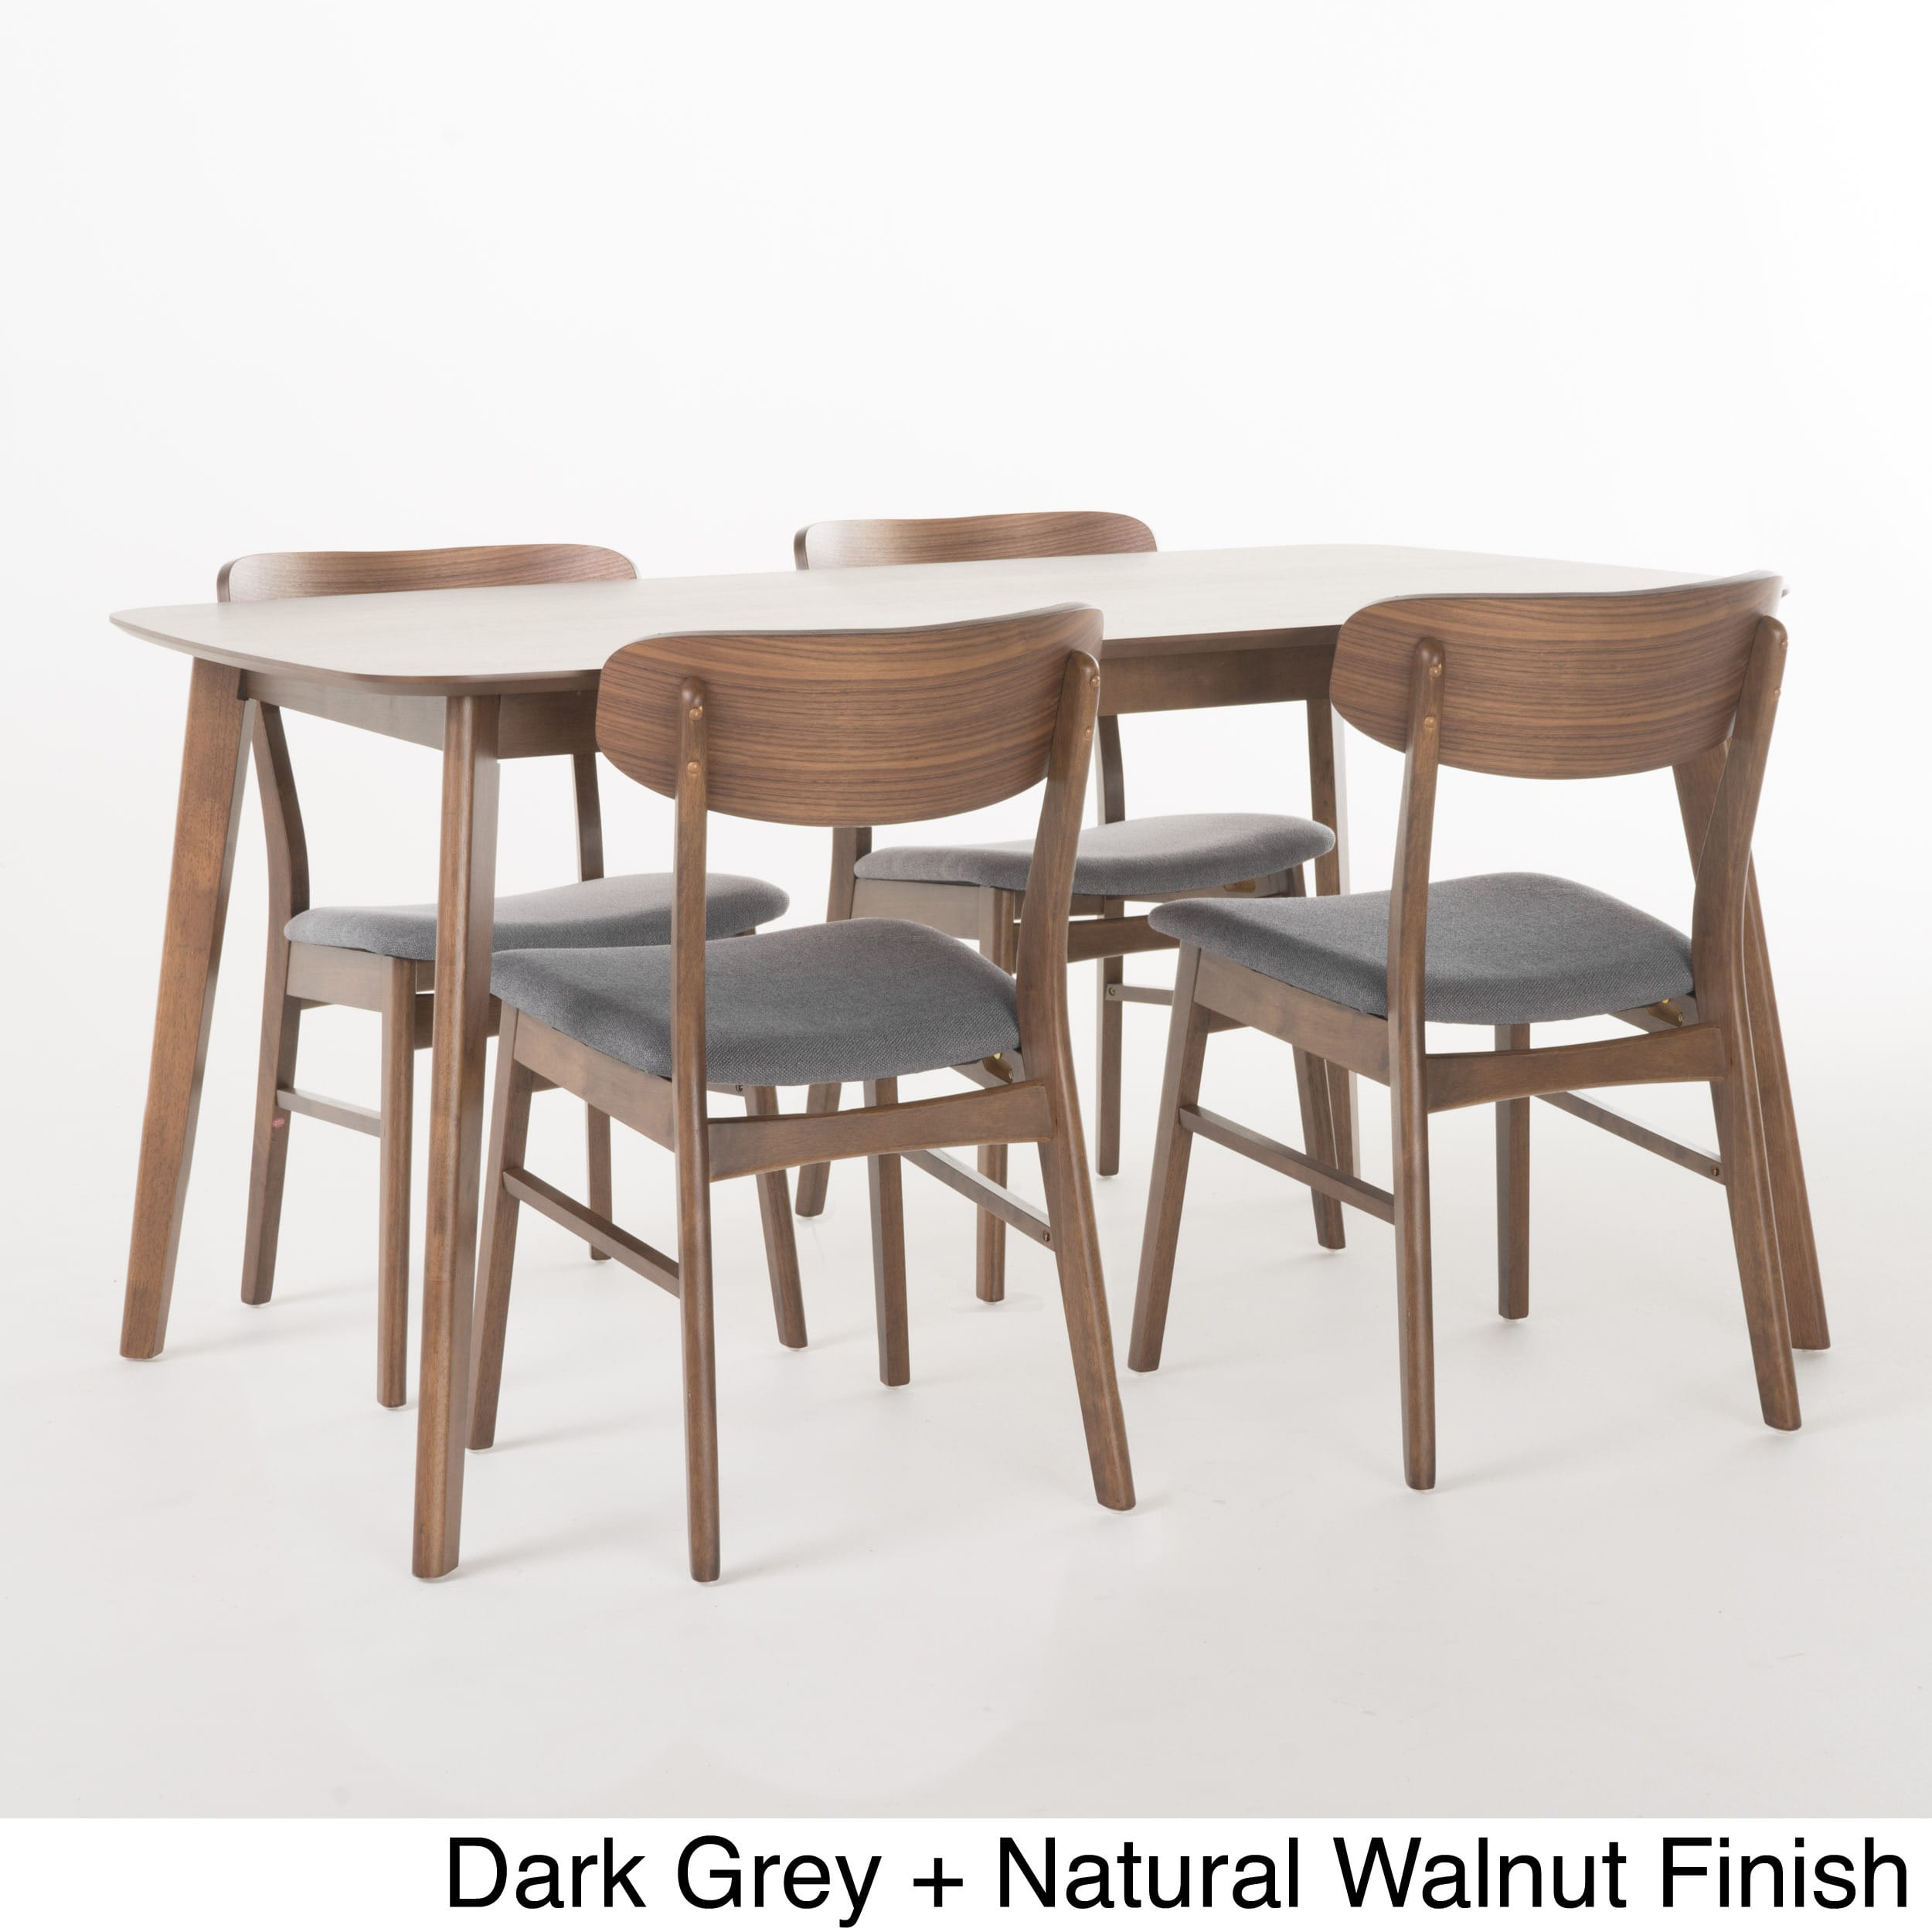 5-Pc Upholstered Midcentury Dining Table Set in Mint